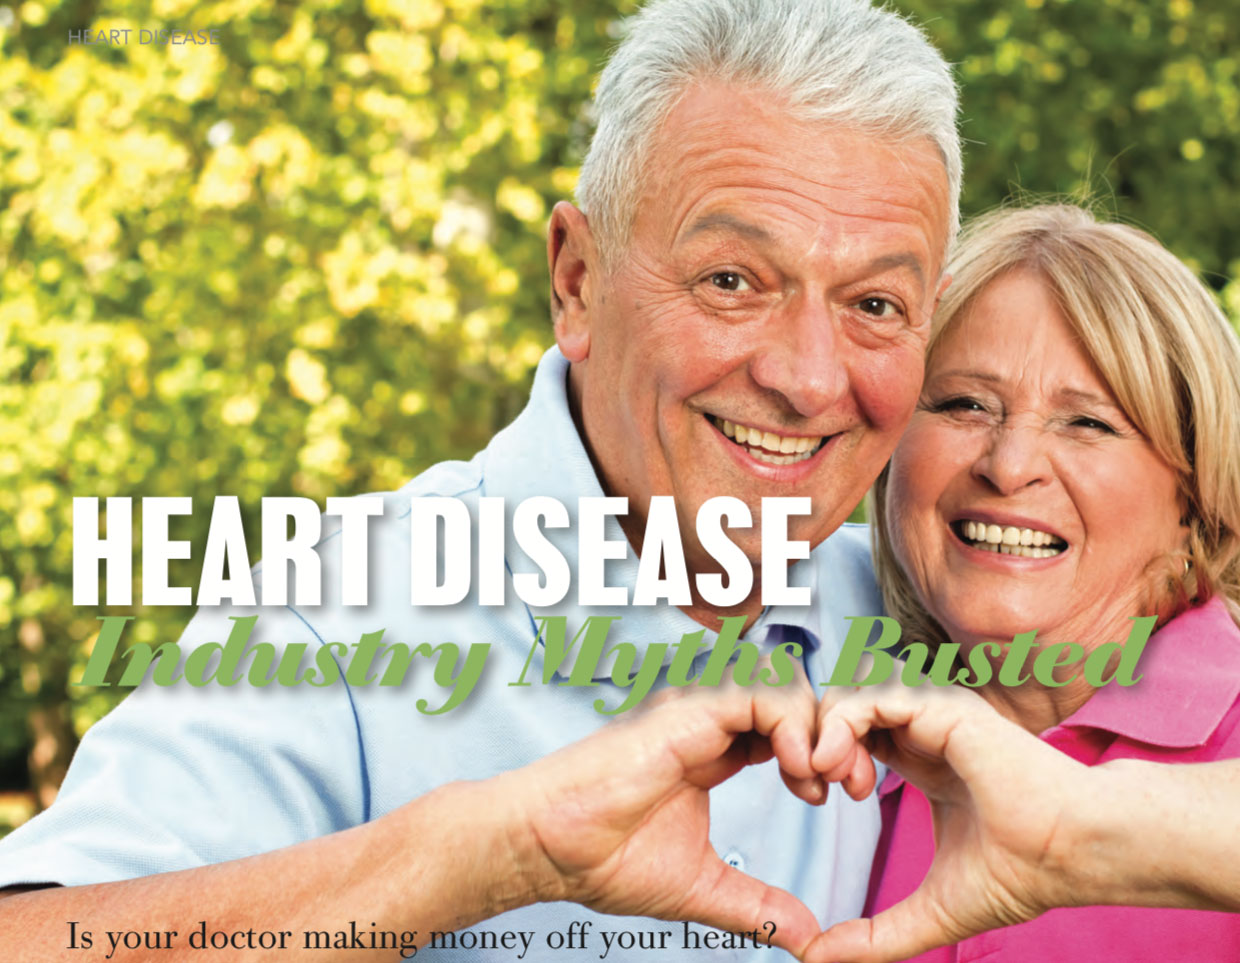 Heart disease industry myths busted